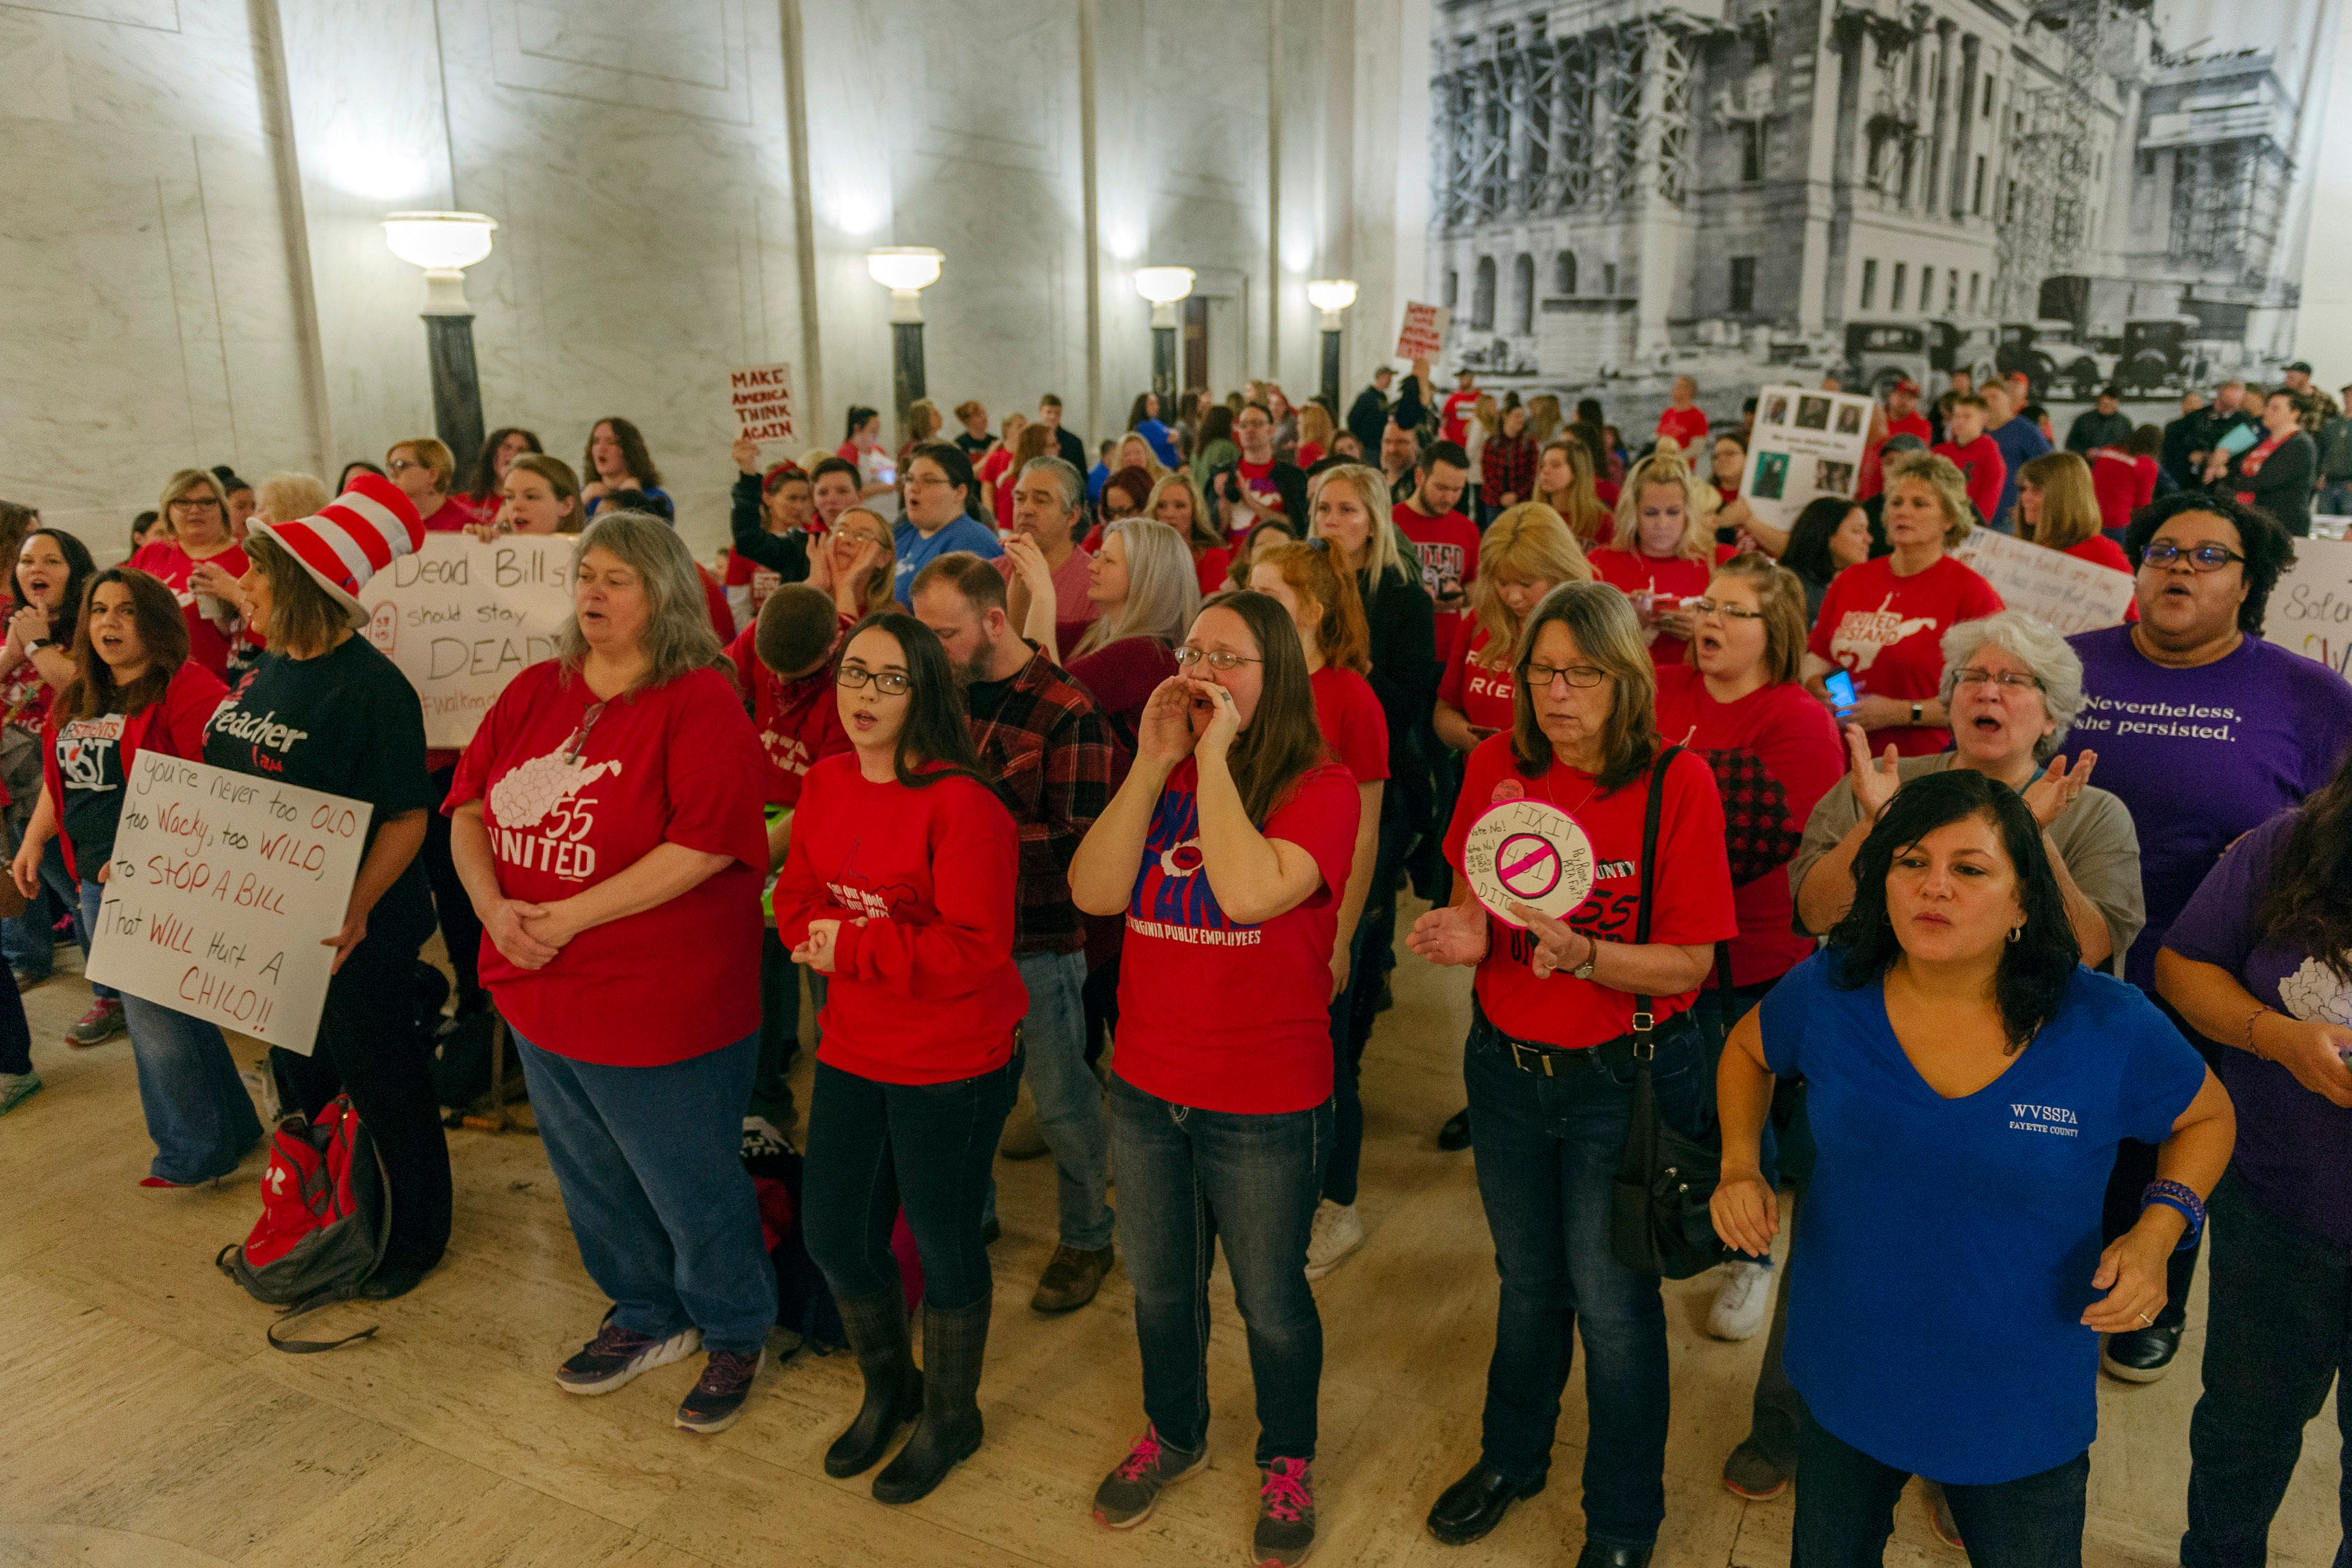 West Virginia teachers and school personnel demonstrate outside the House of Delegates chamber on Wednesday in Charleston.